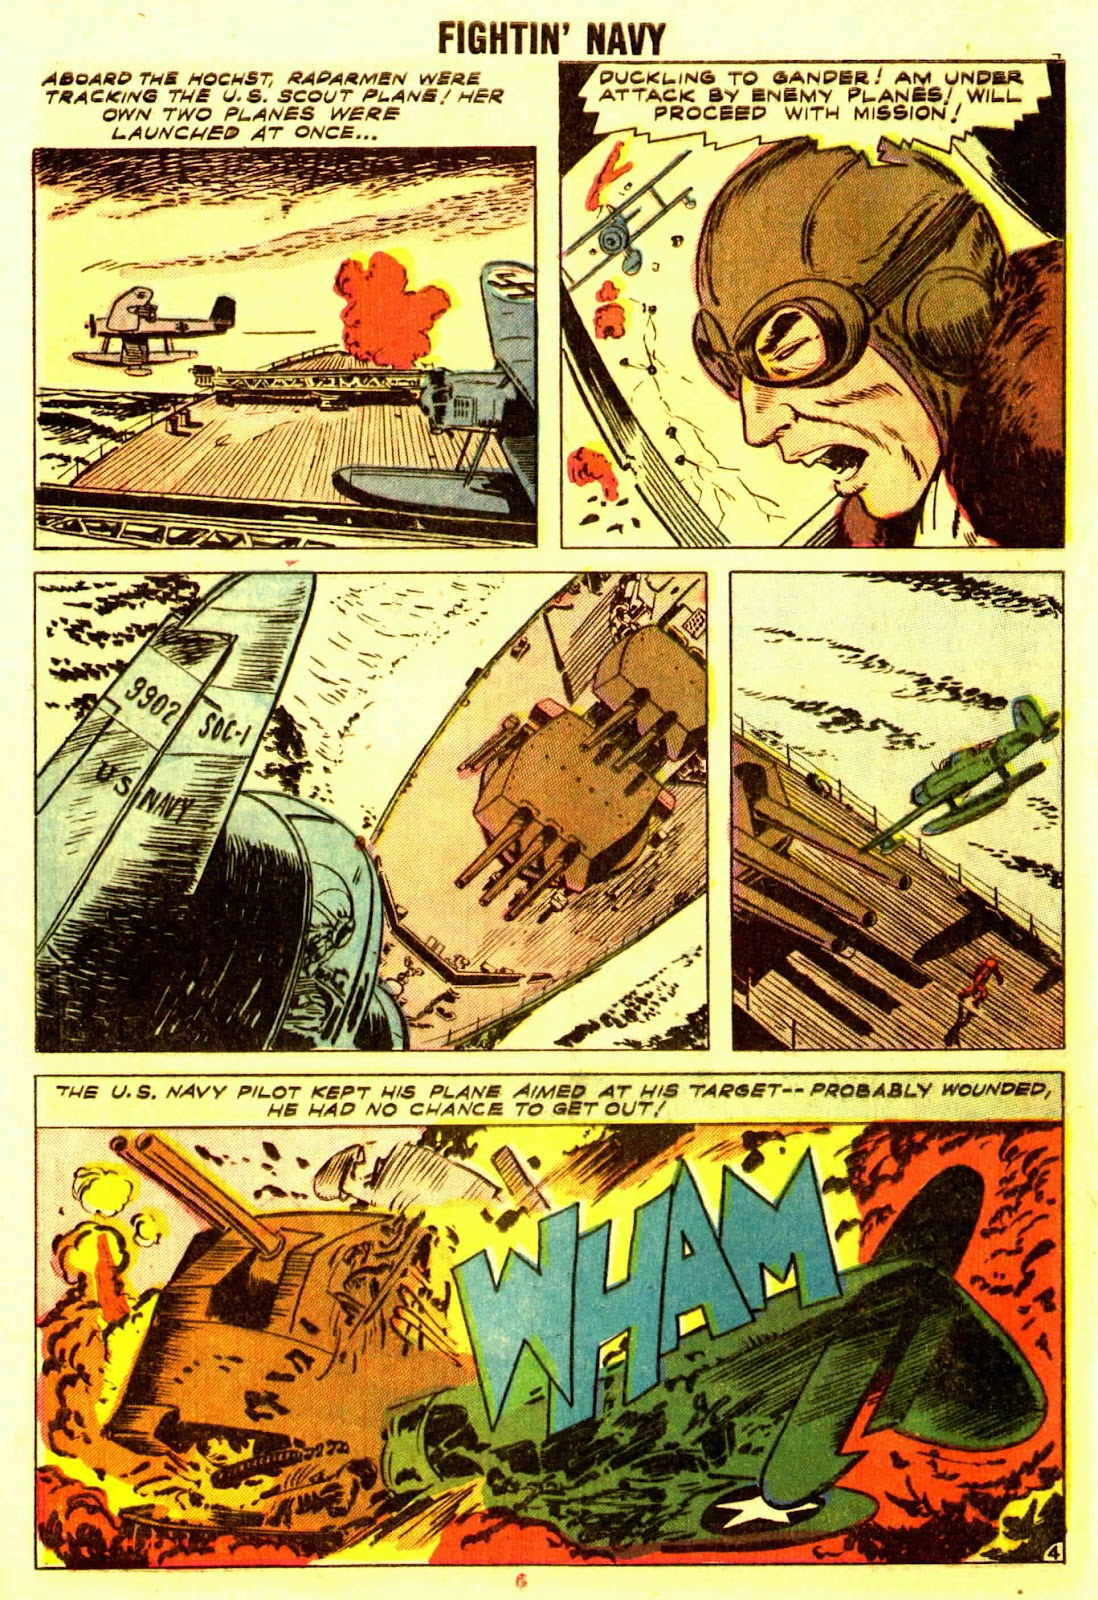 Read online Fightin' Navy comic -  Issue #83 - 6